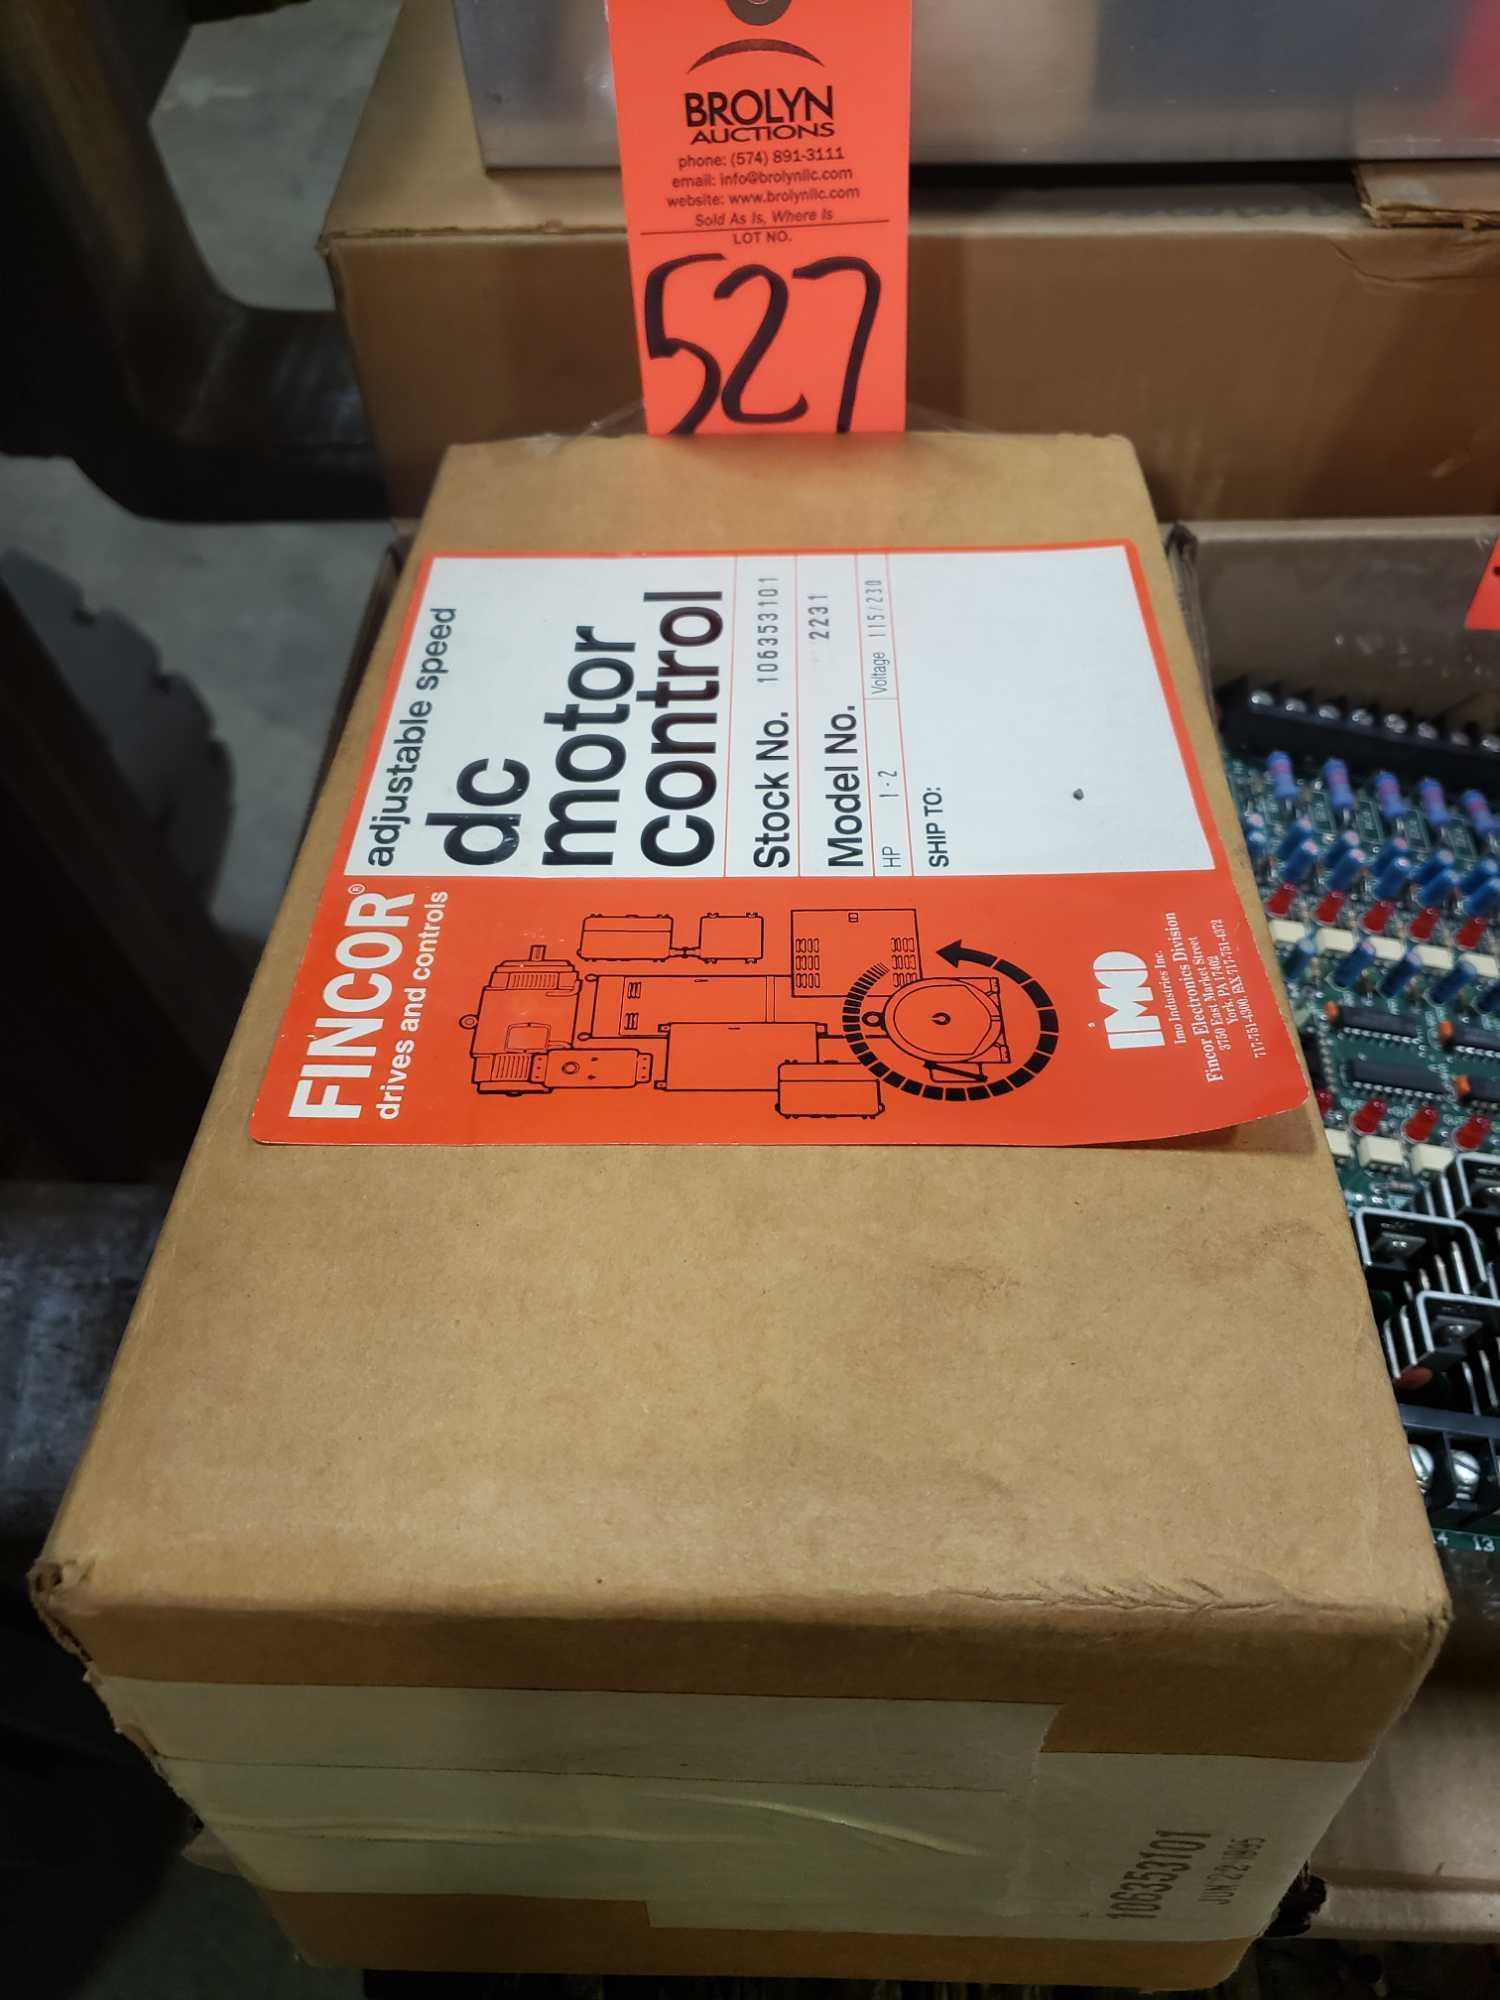 Fincor Drives adjustable speed control DC motor control model 2231. New in box.